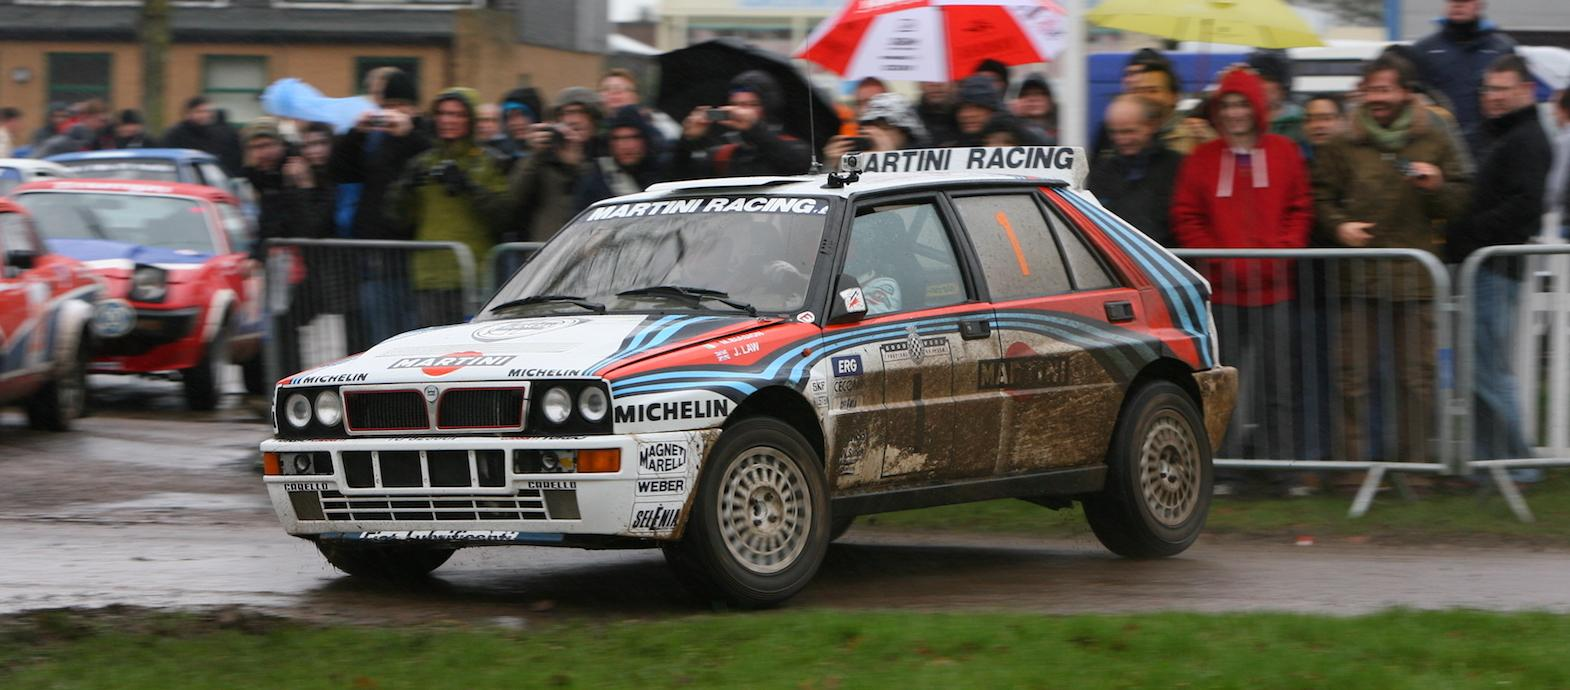 Miki Biasion to star at Race Retro